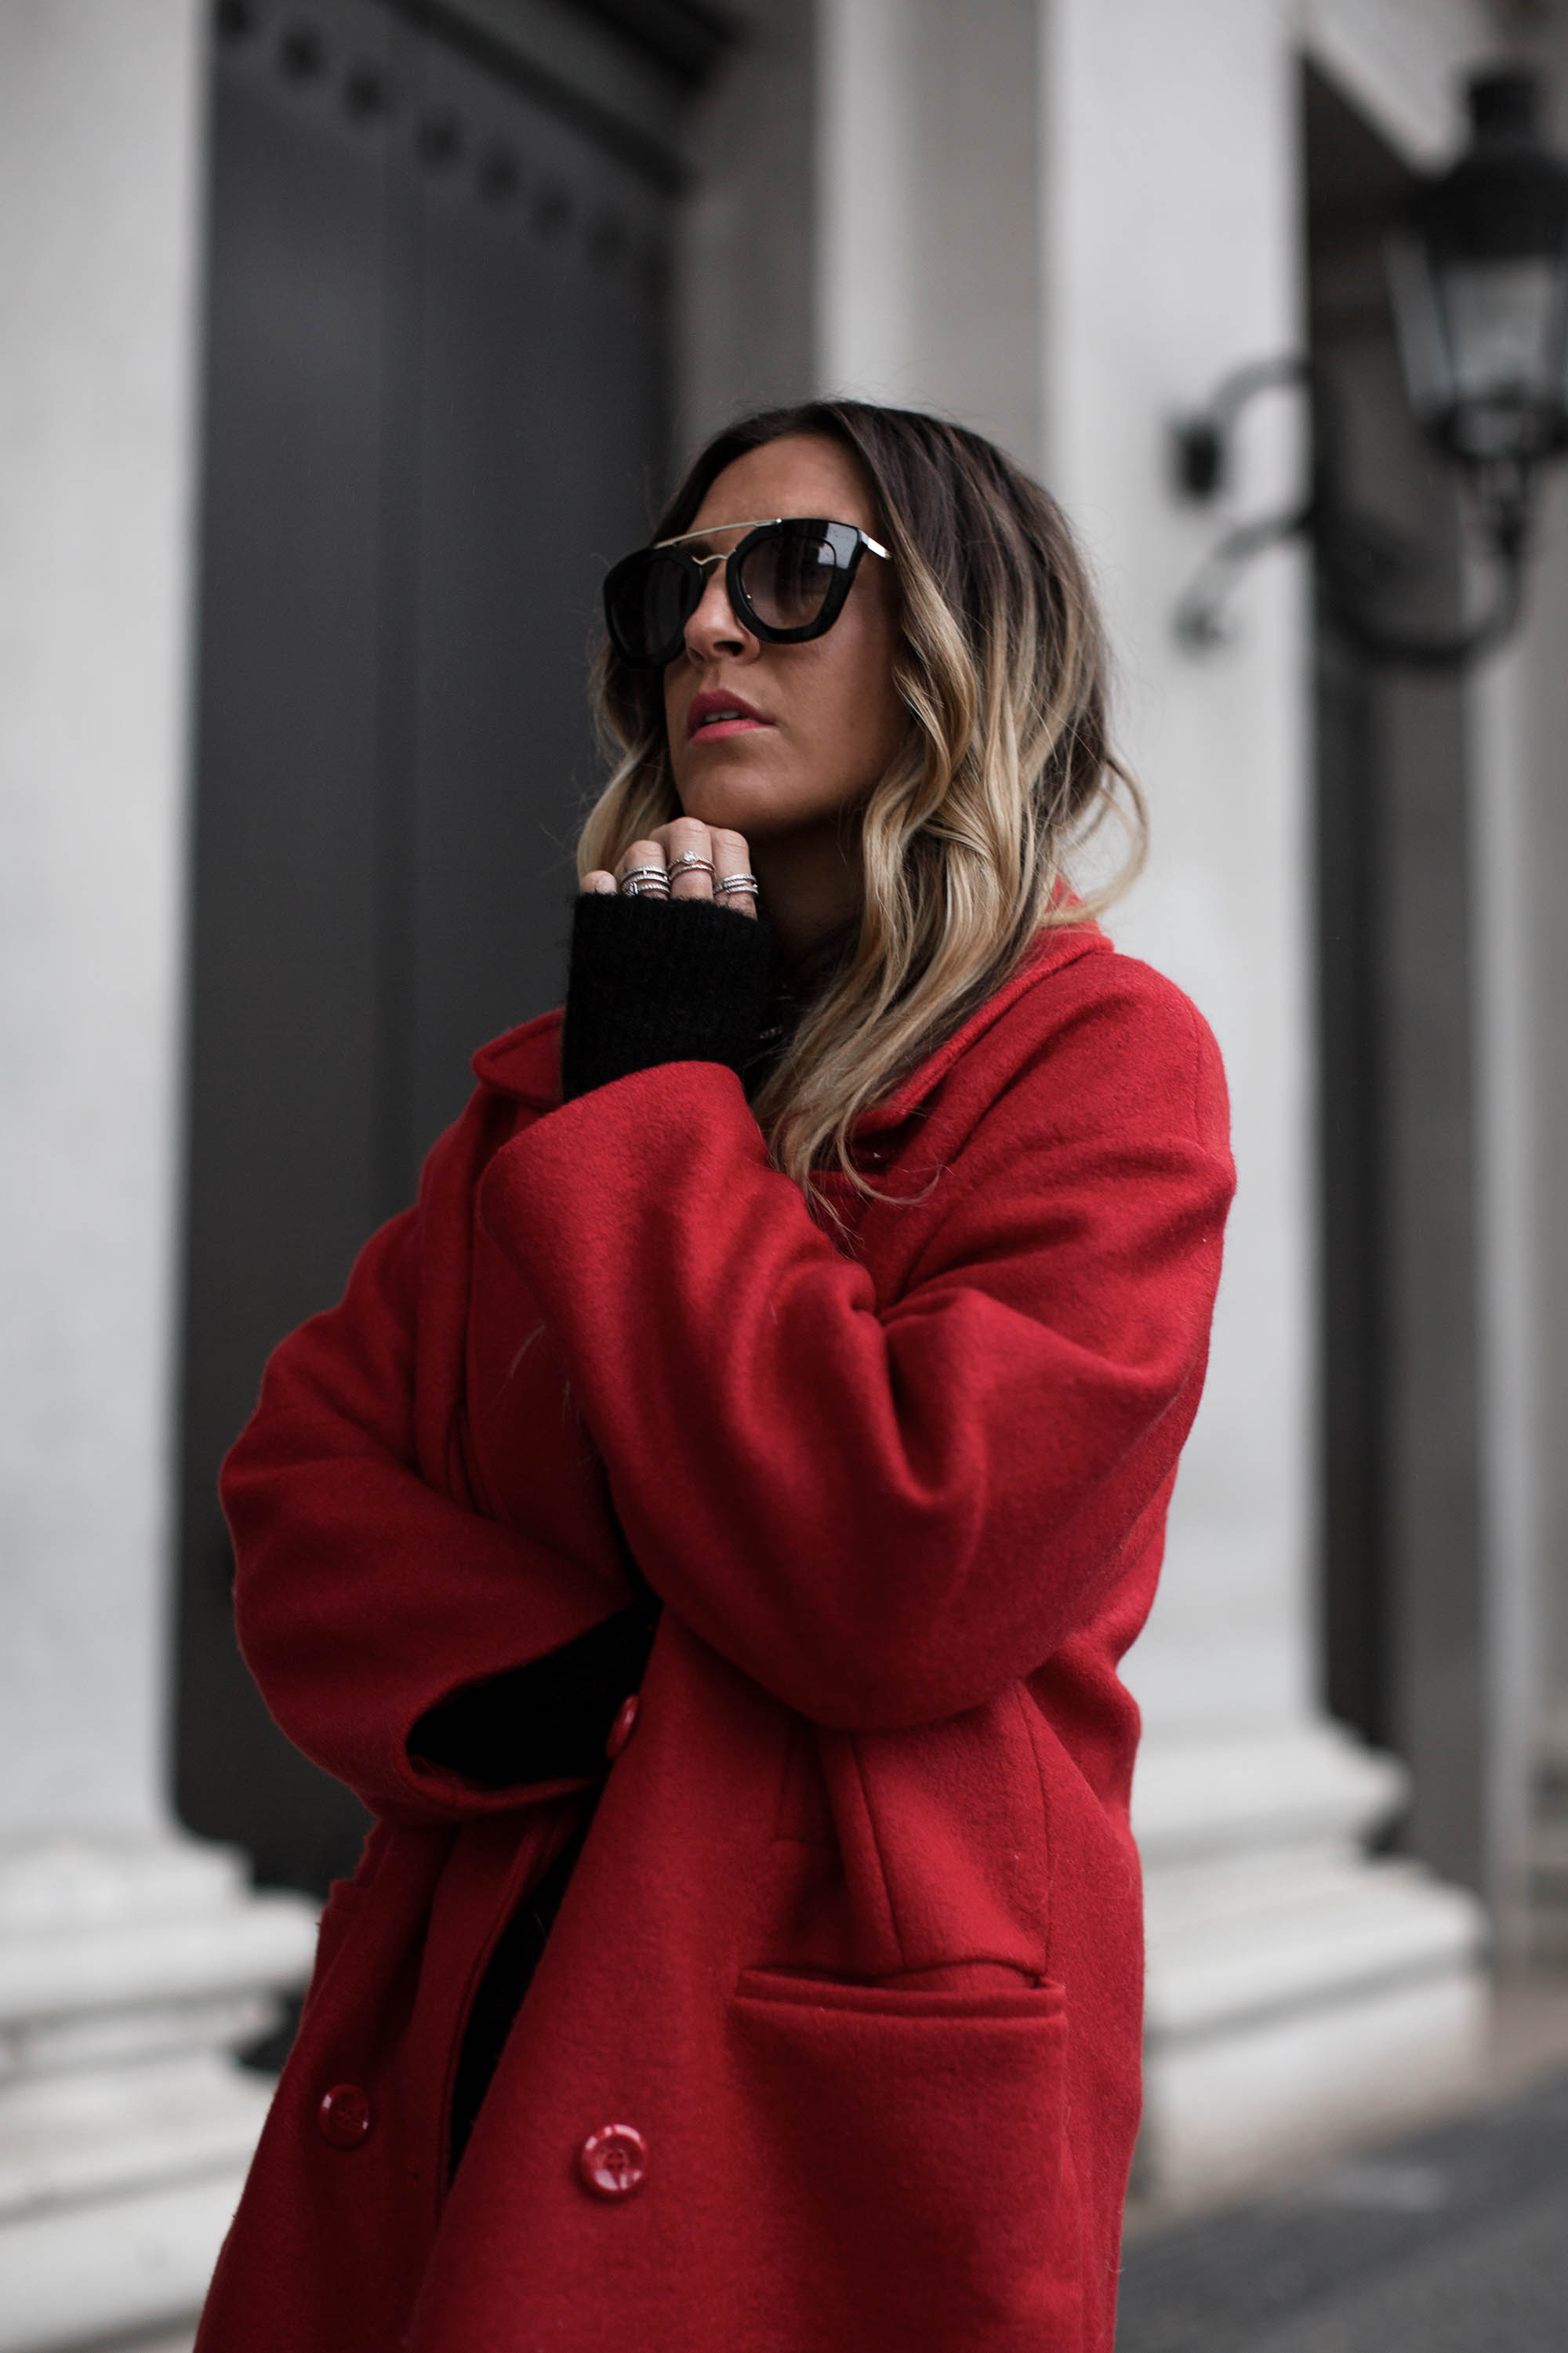 black-palms-hm-roter-mantel-boots-edited-streestyle-fashionblog